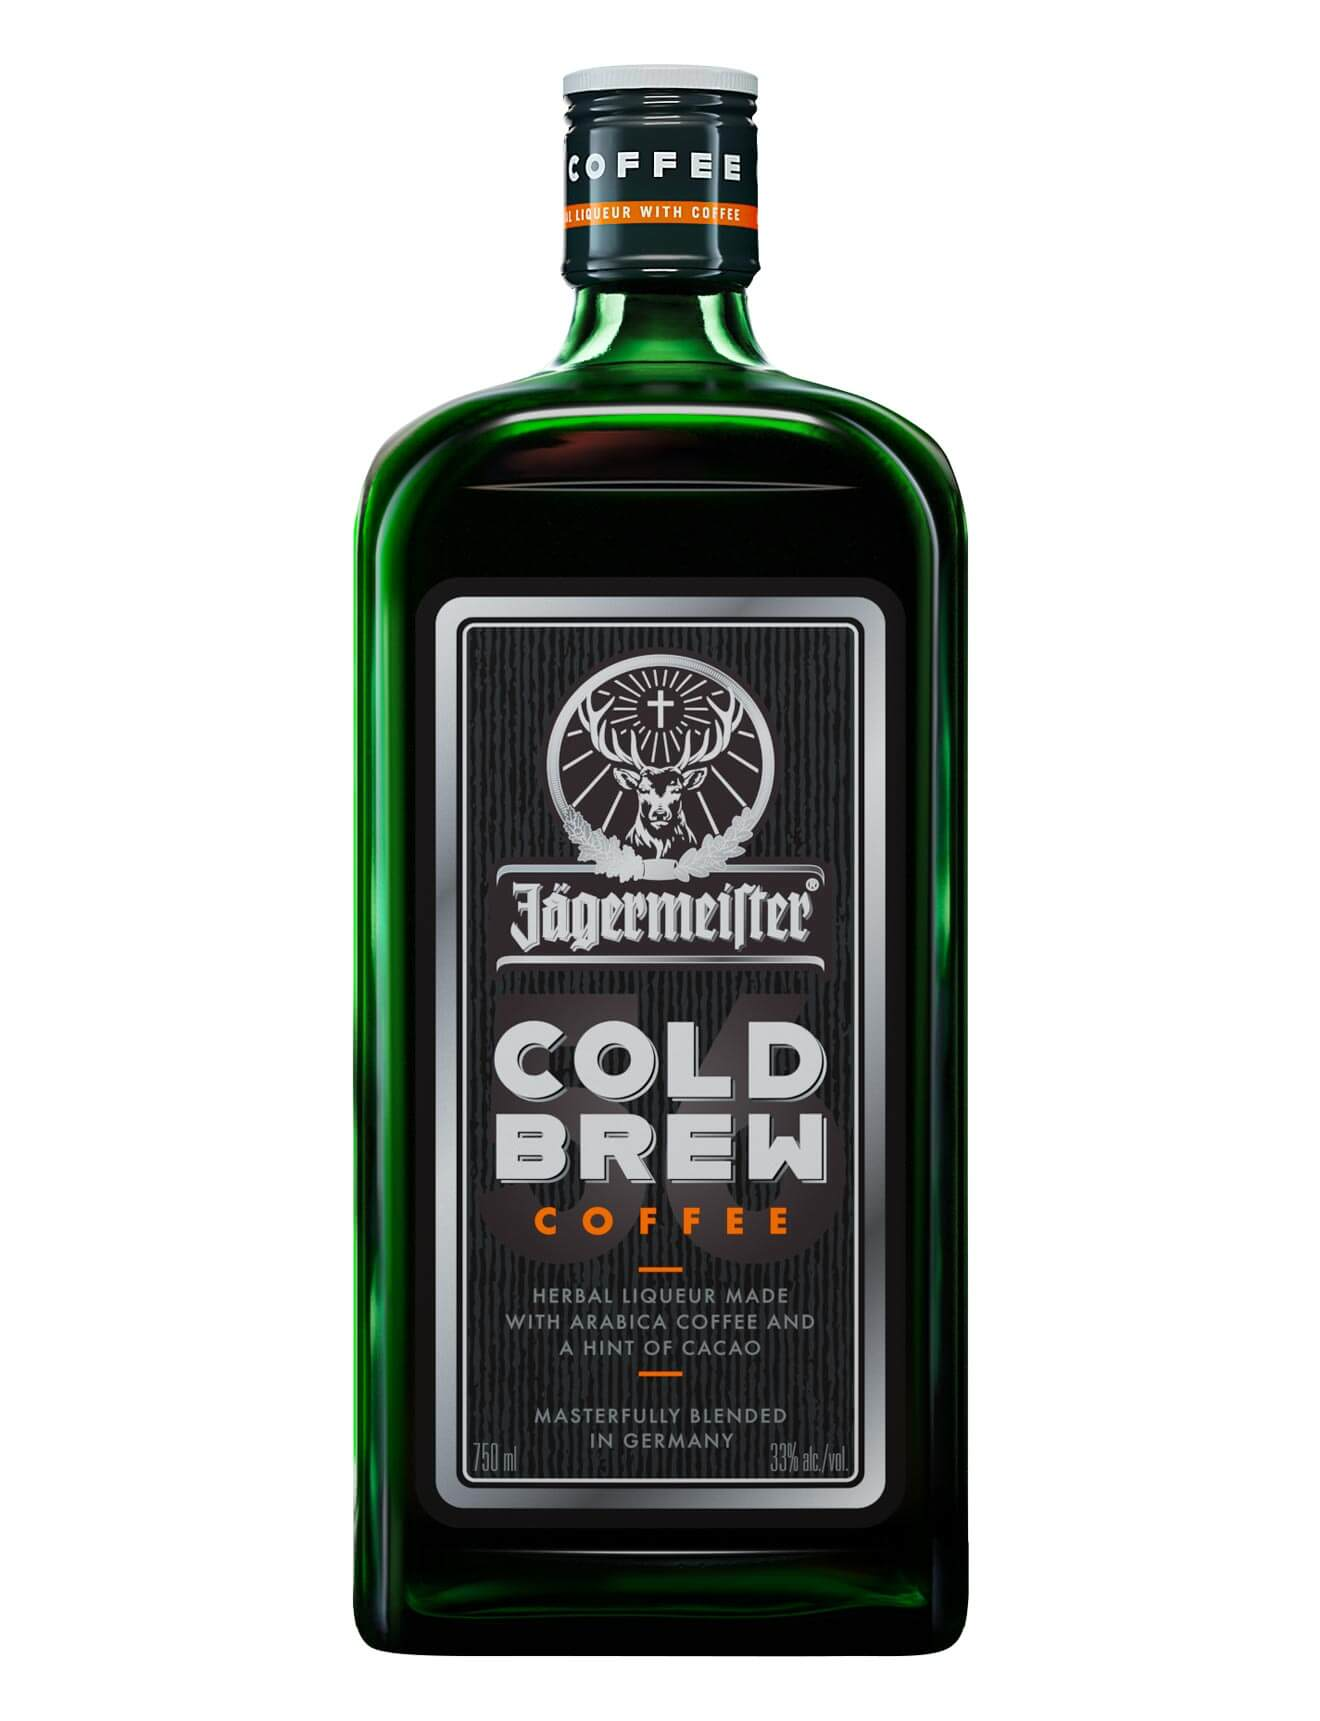 Jägermeister Cold Brew Coffee Liqueur, bottle on white